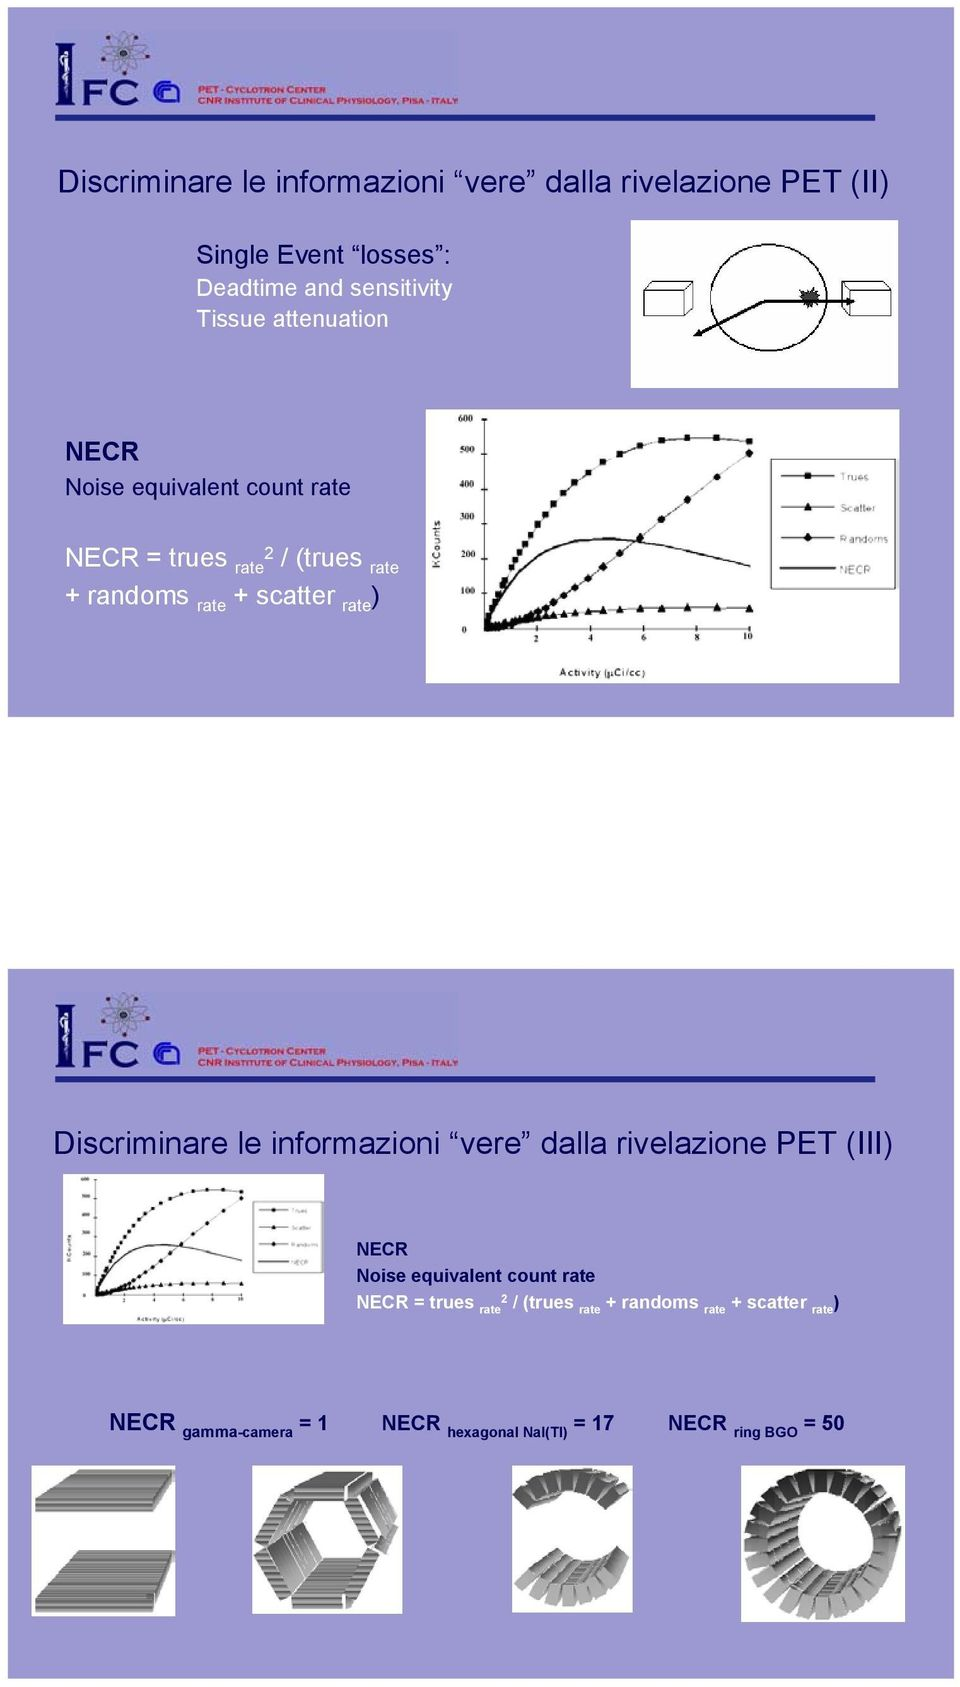 rate ) Discriminare le informazioni vere dalla rivelazione PET (III) NECR Noise equivalent count rate NECR =